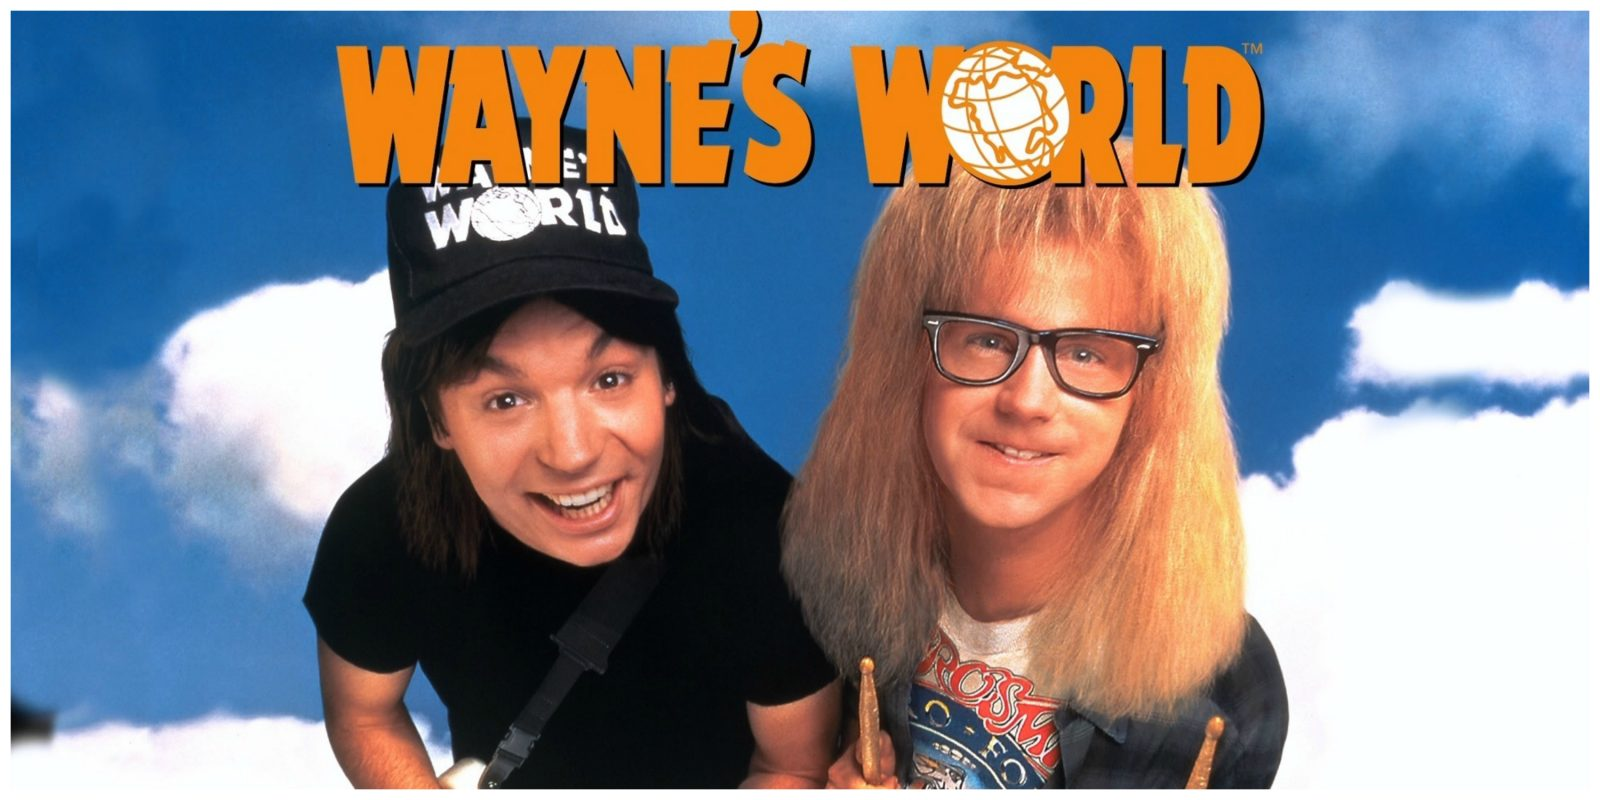 wayne's world header